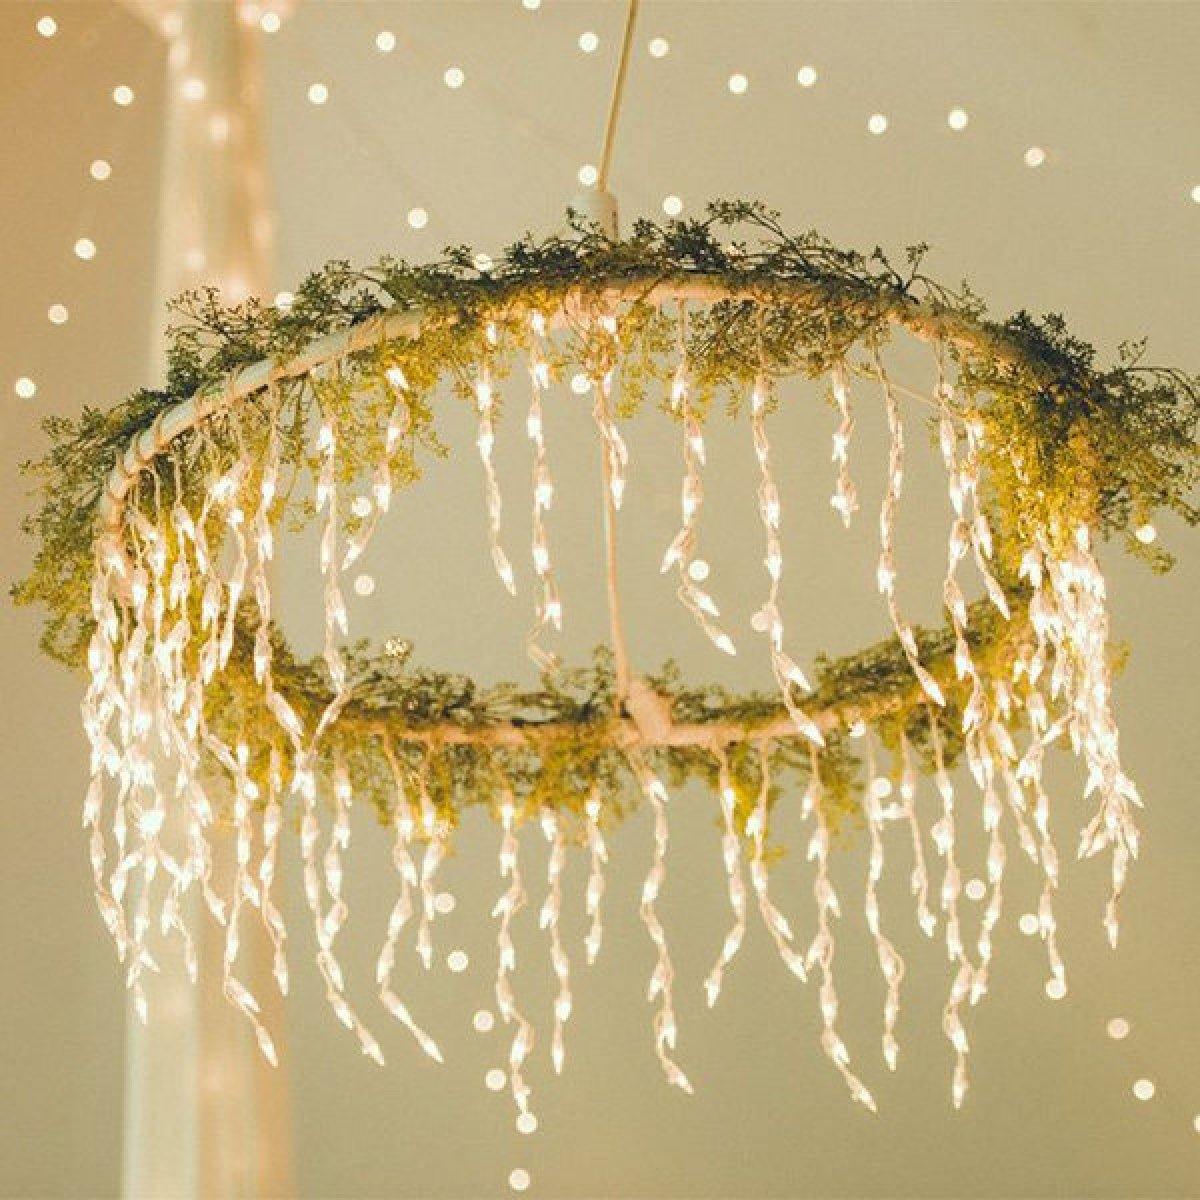 hoop hanging from ceiling with lights and greenery